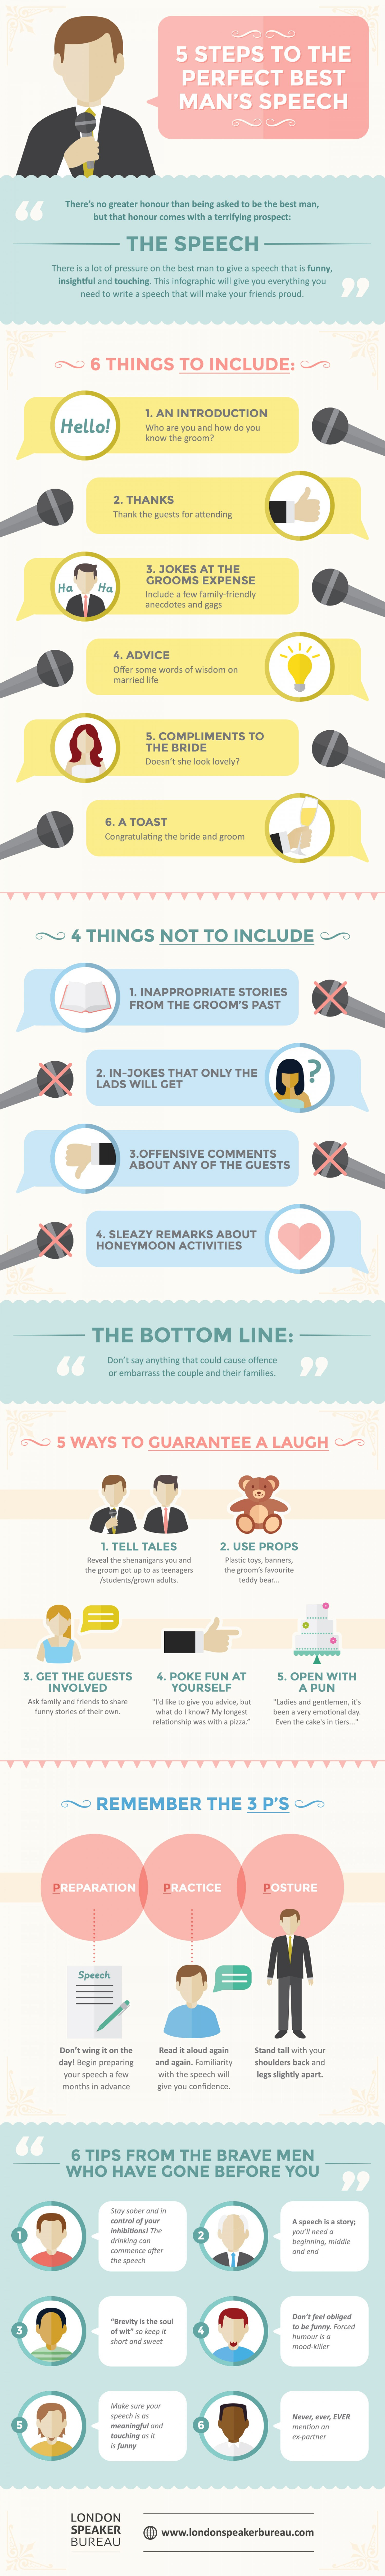 5 steps to making the perfect best man's speech  visually